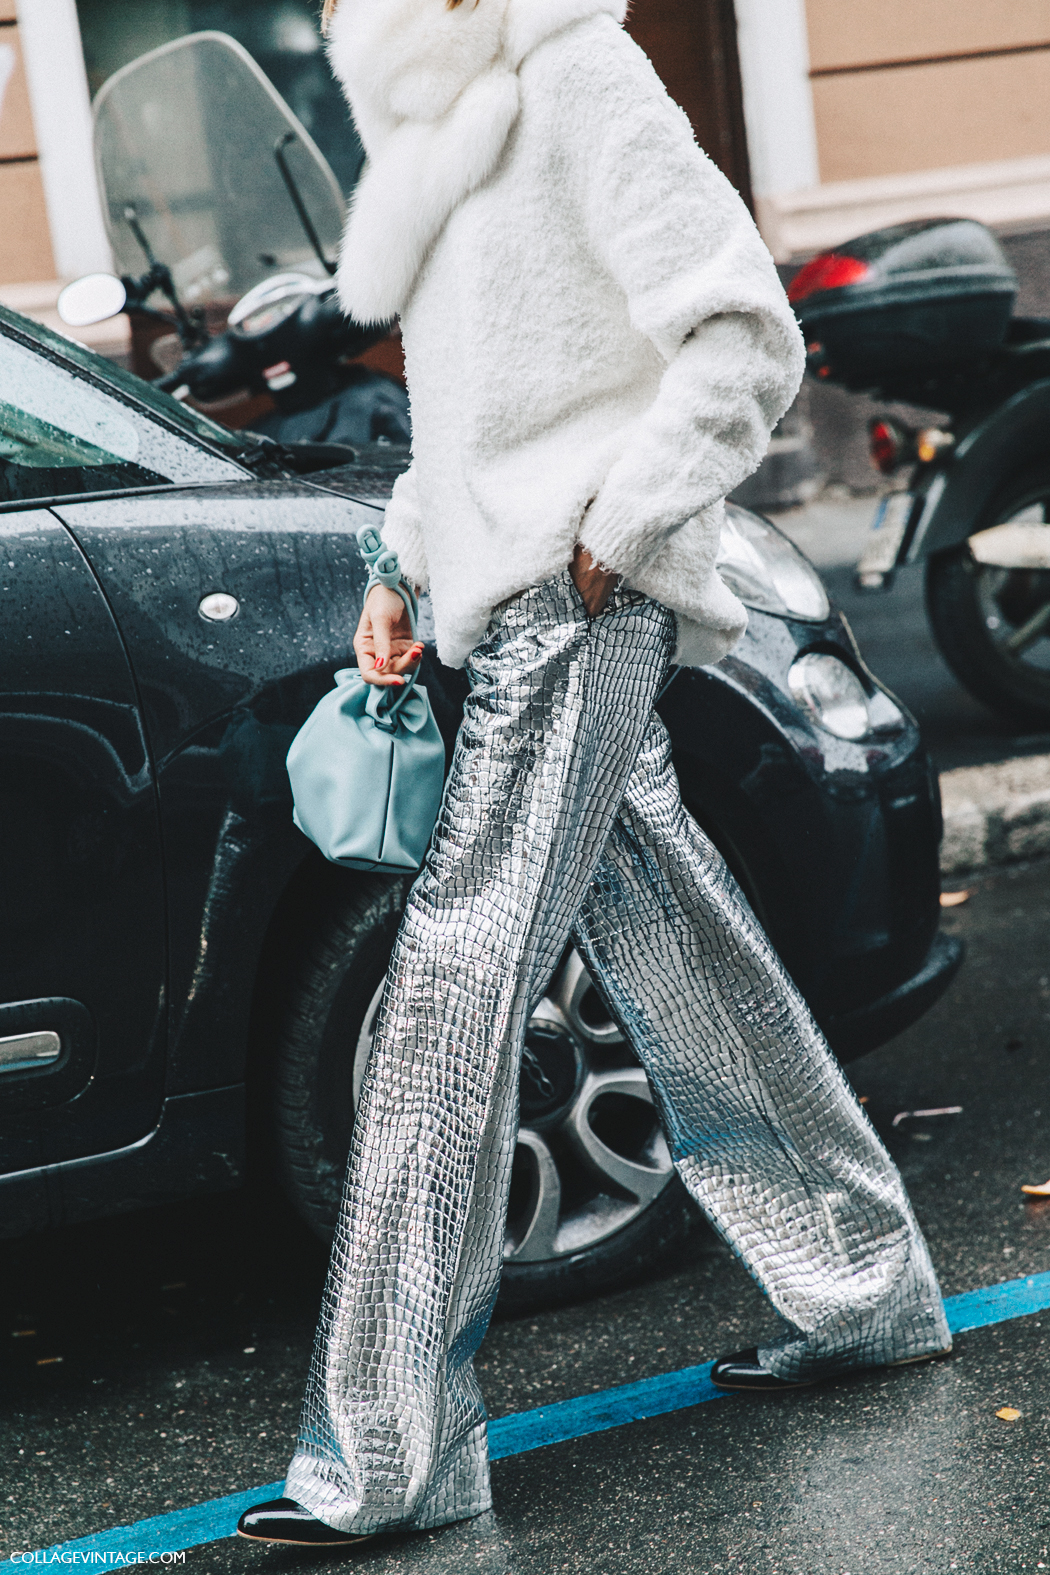 Milan_Fashion_Week_Fall_16-MFW-Street_Style-Collage_Vintage-Candela_Novembre-Loewe_Leather_Coco_TRousers-Metallic-2